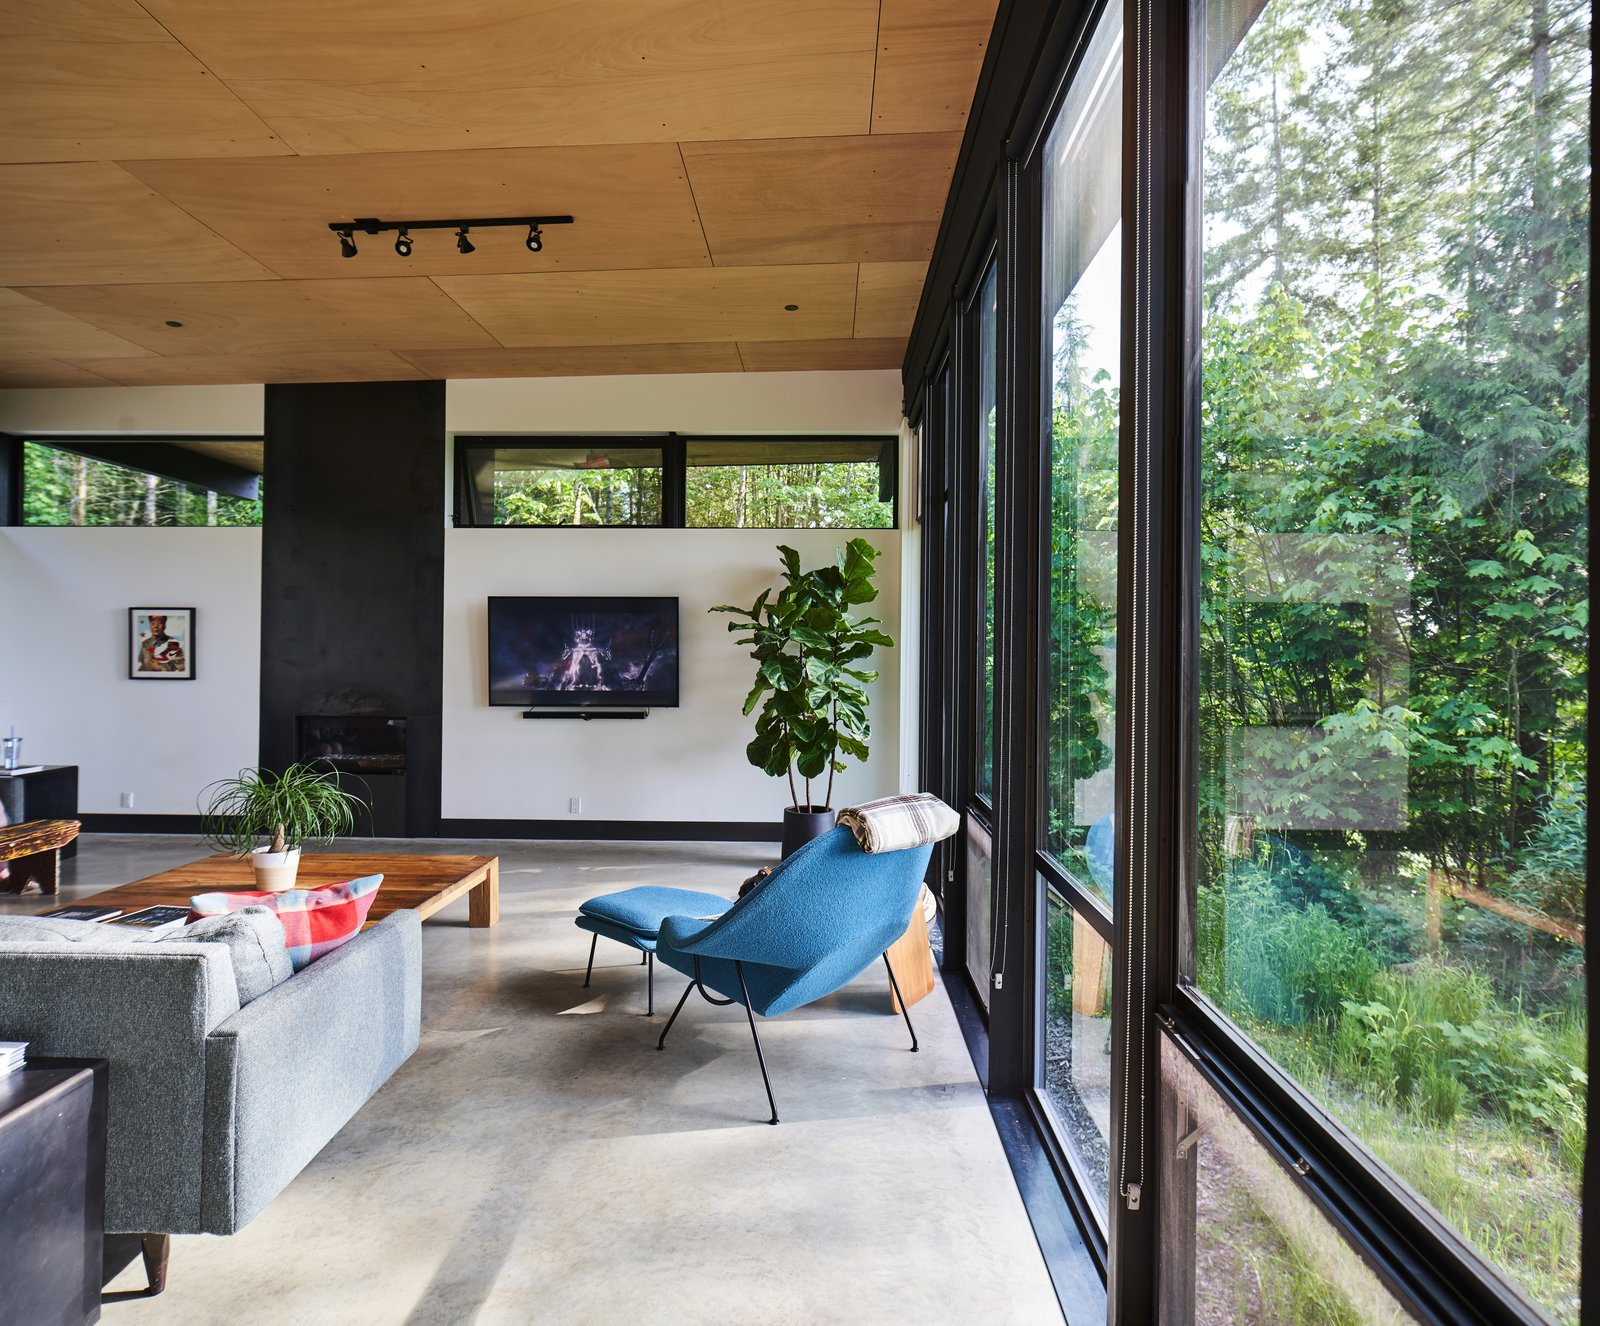 Wooden ceilings ground some of the home's more industrial features in its organic setting.